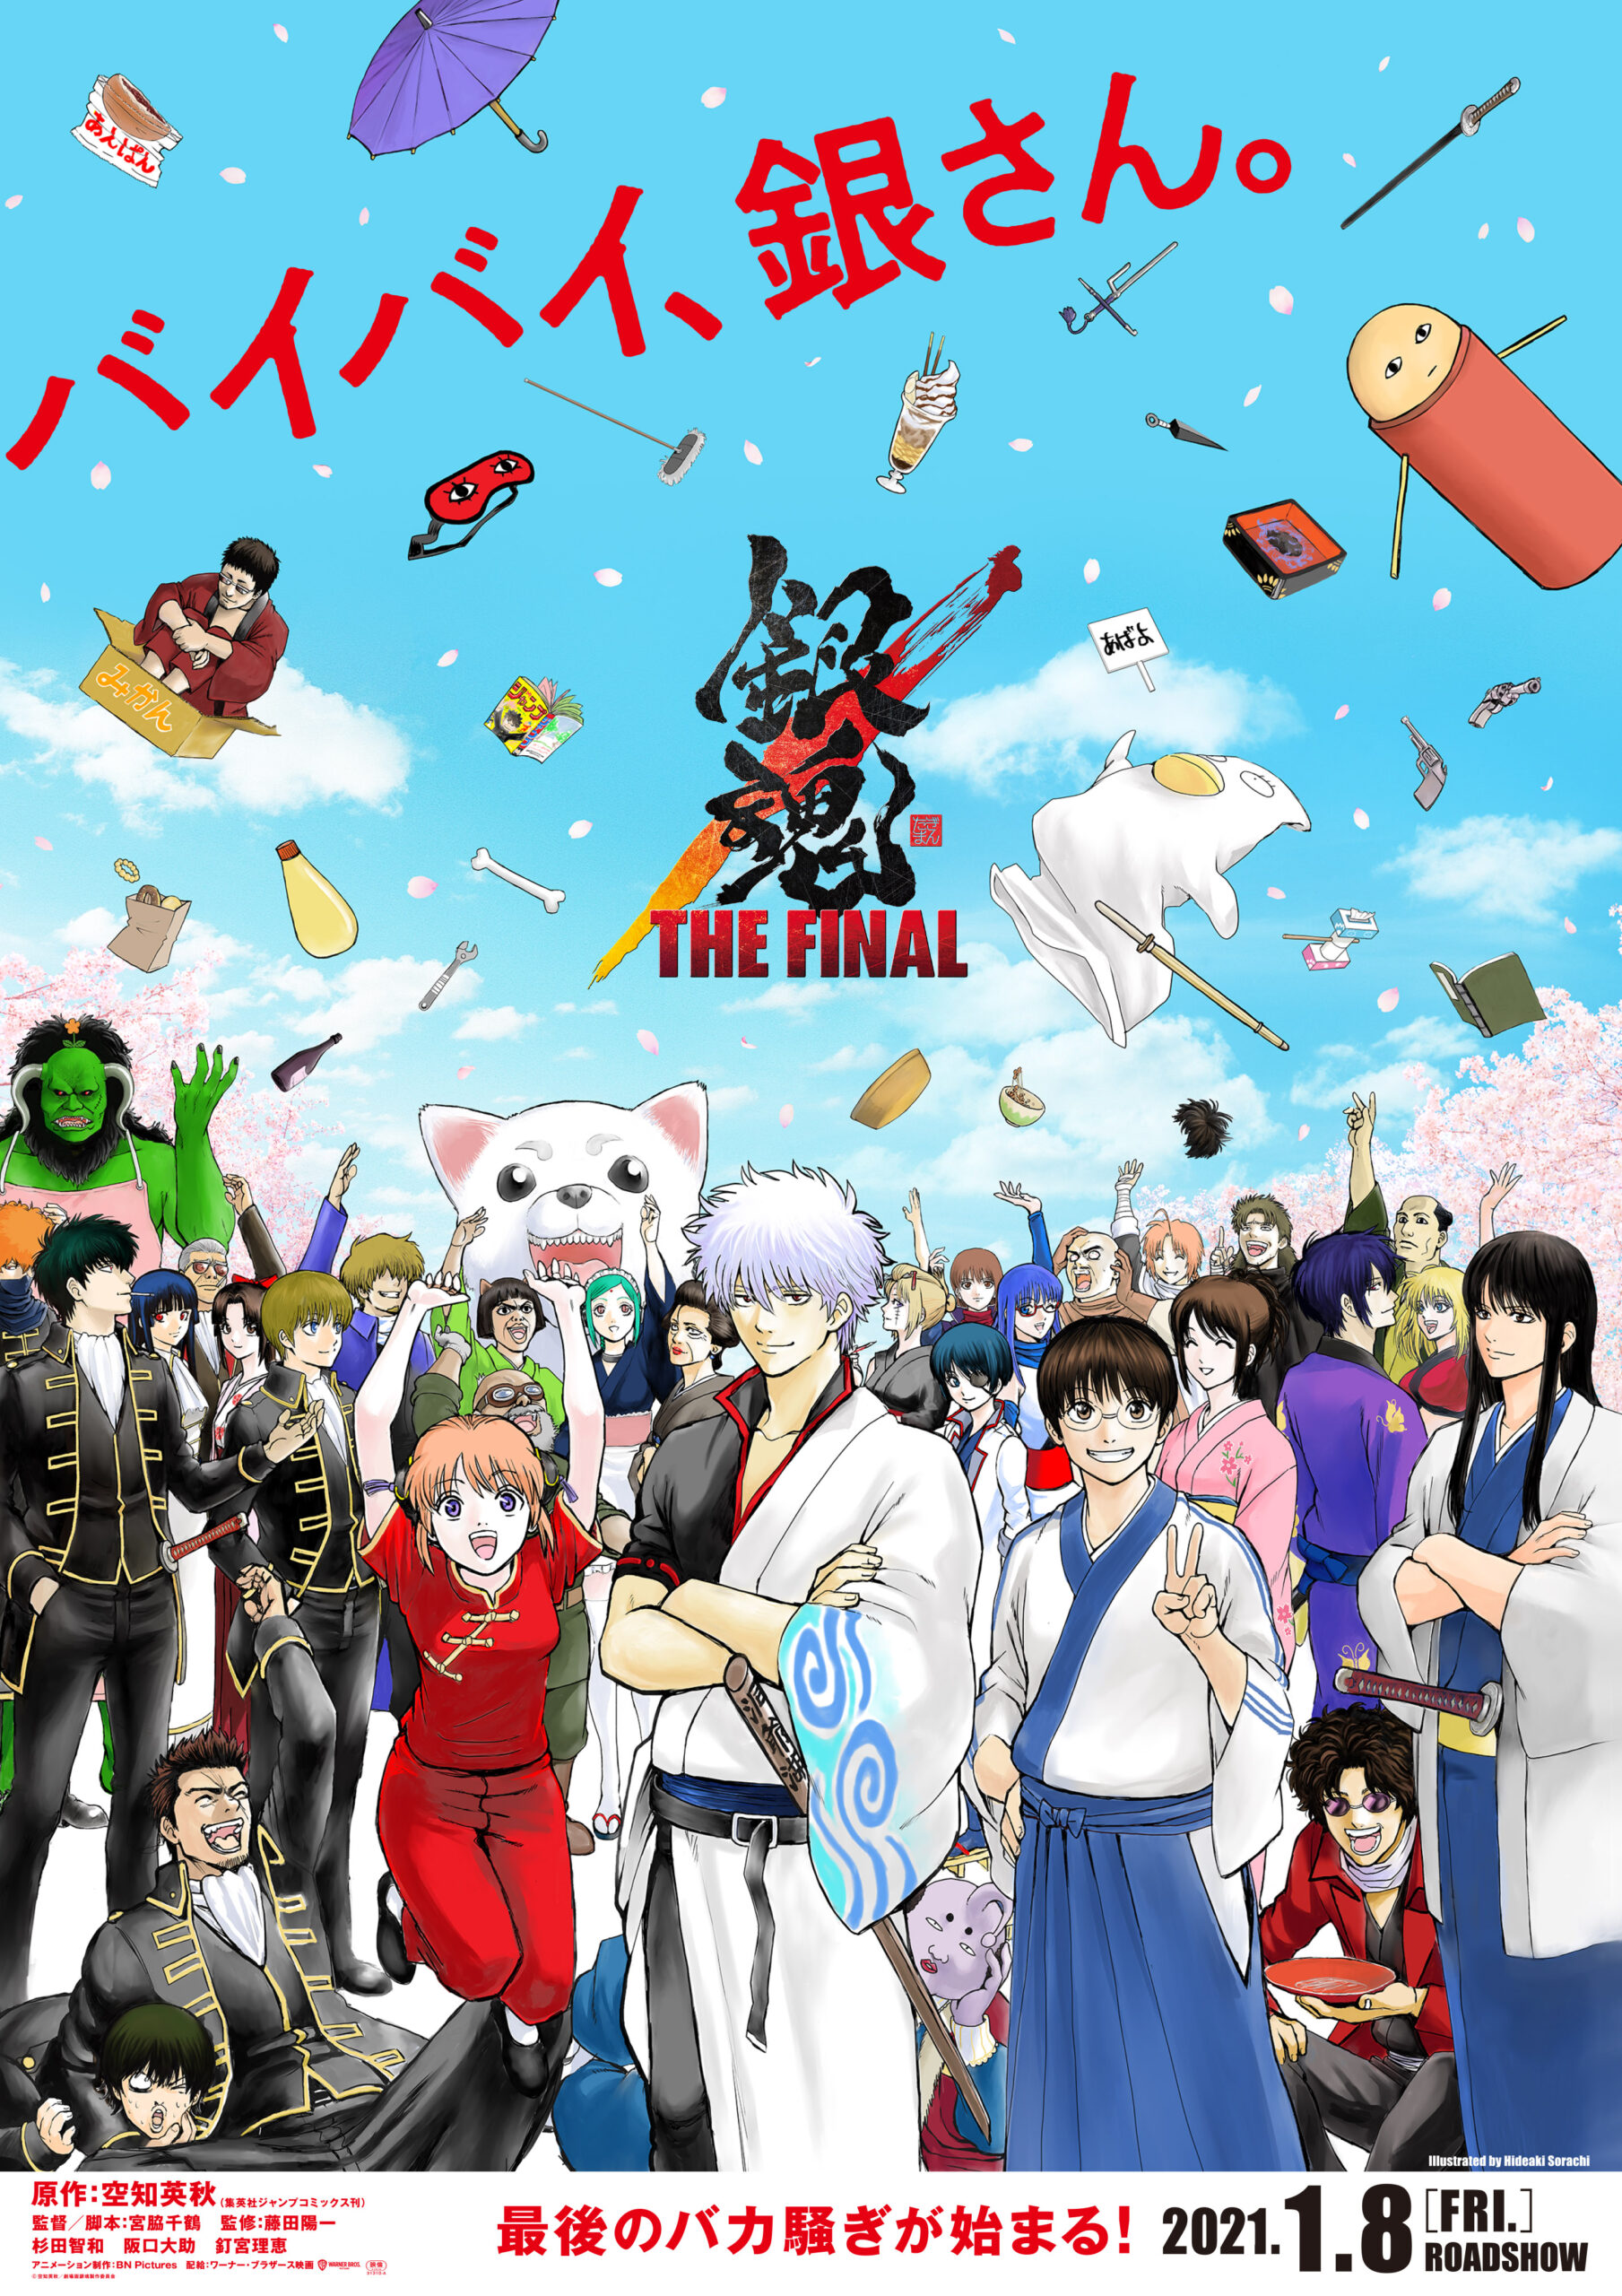 Gintama: THE FINAL new trailer - key visual